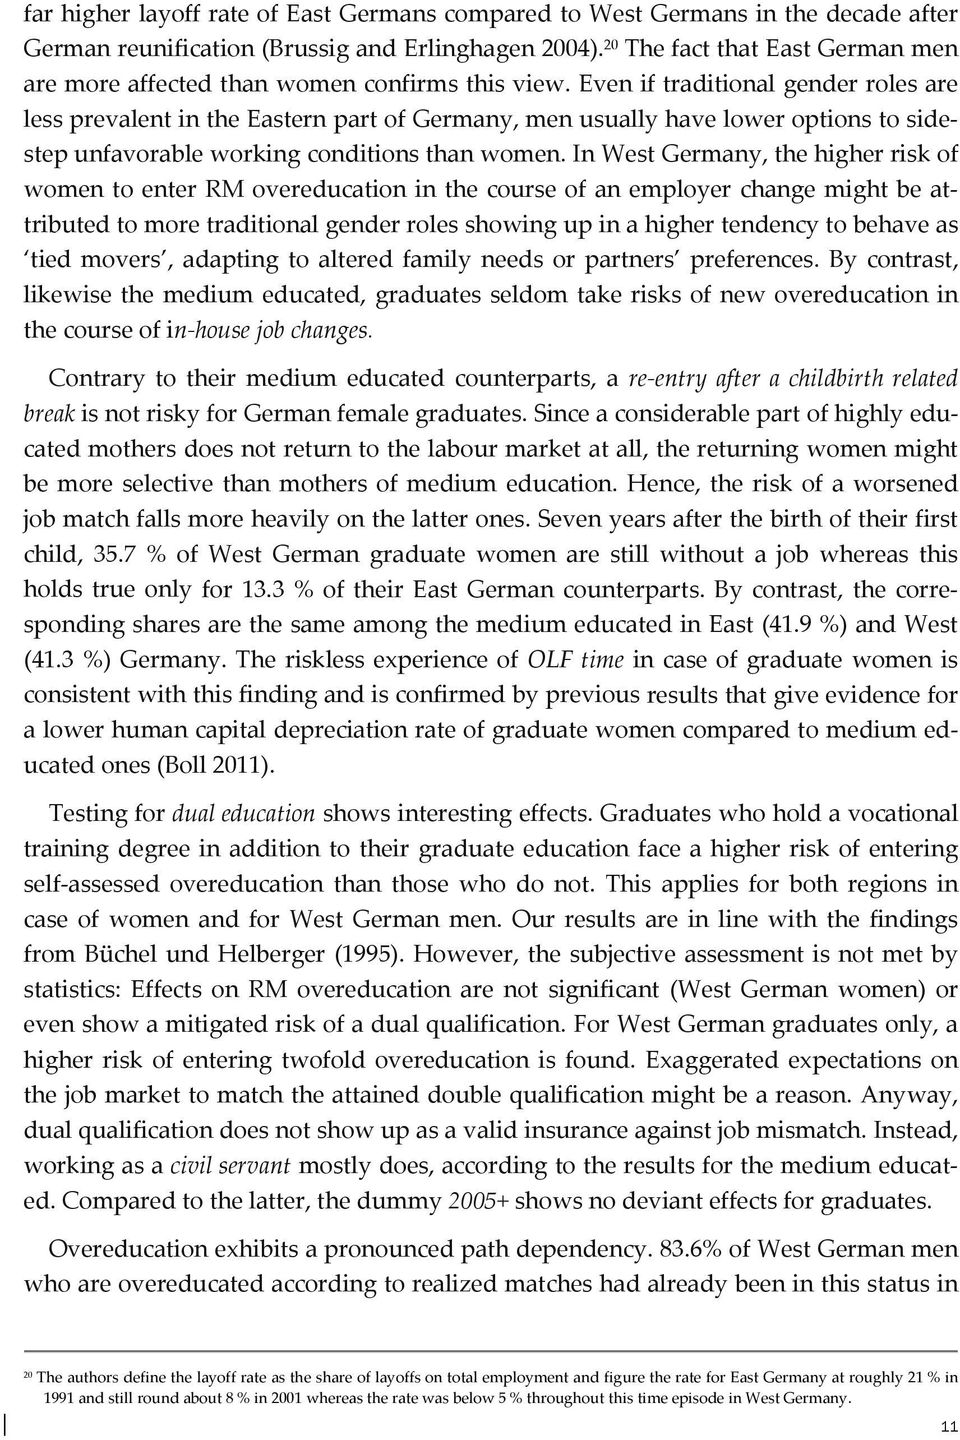 Even if traditional gender roles are less prevalent in the Eastern part of Germany, men usually have lower options to sidestep unfavorable working conditions than women.